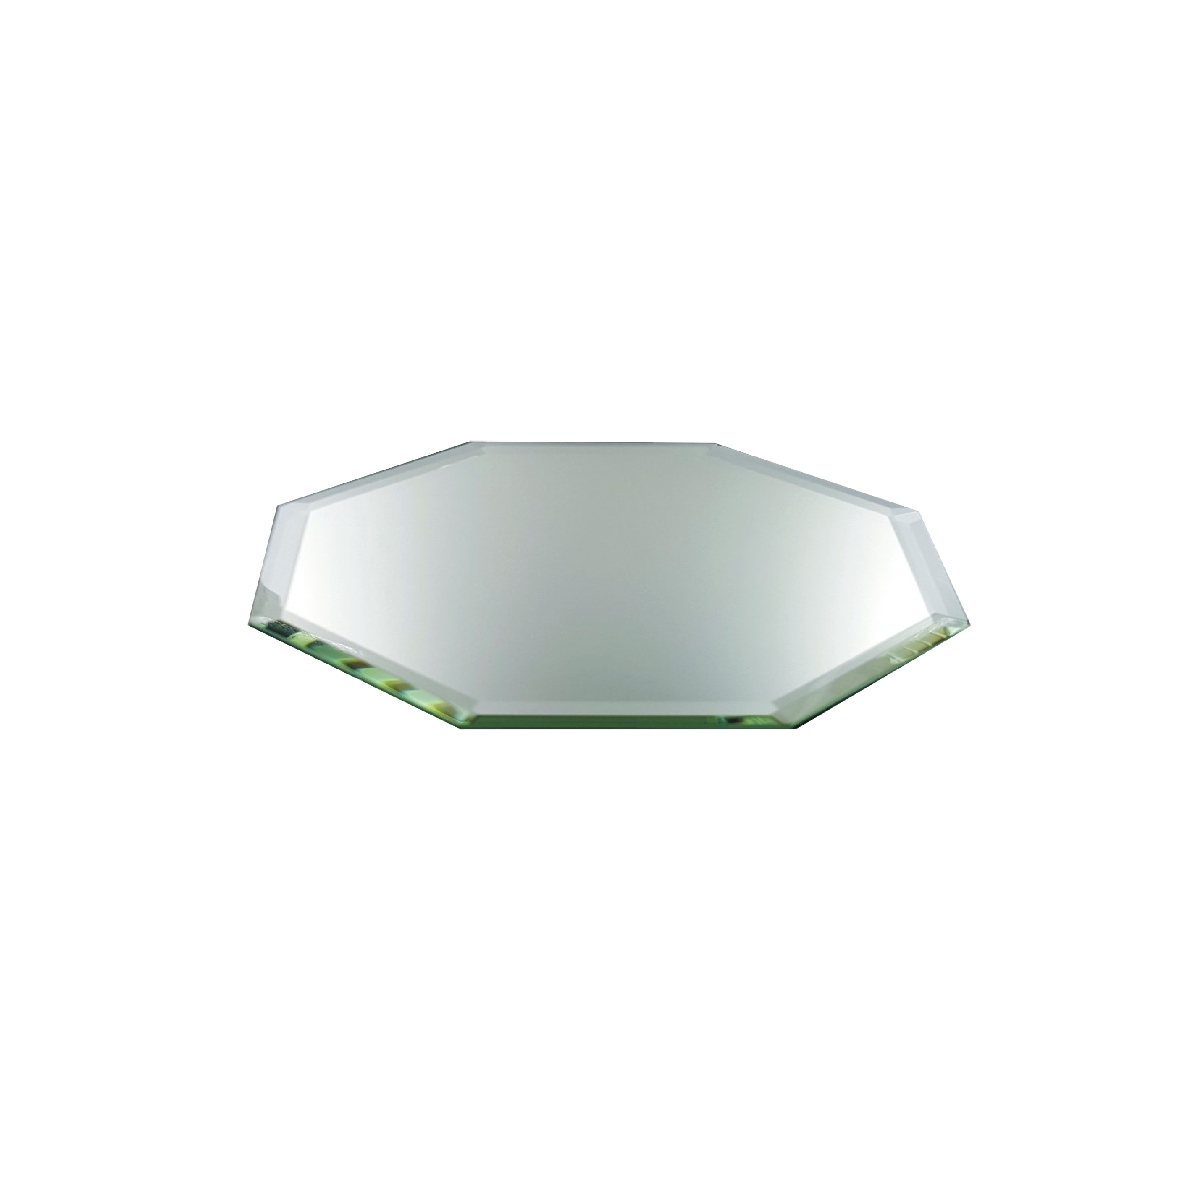 Stretched Octagon Mirrors Collectibles or Decorative Purpose, 3M